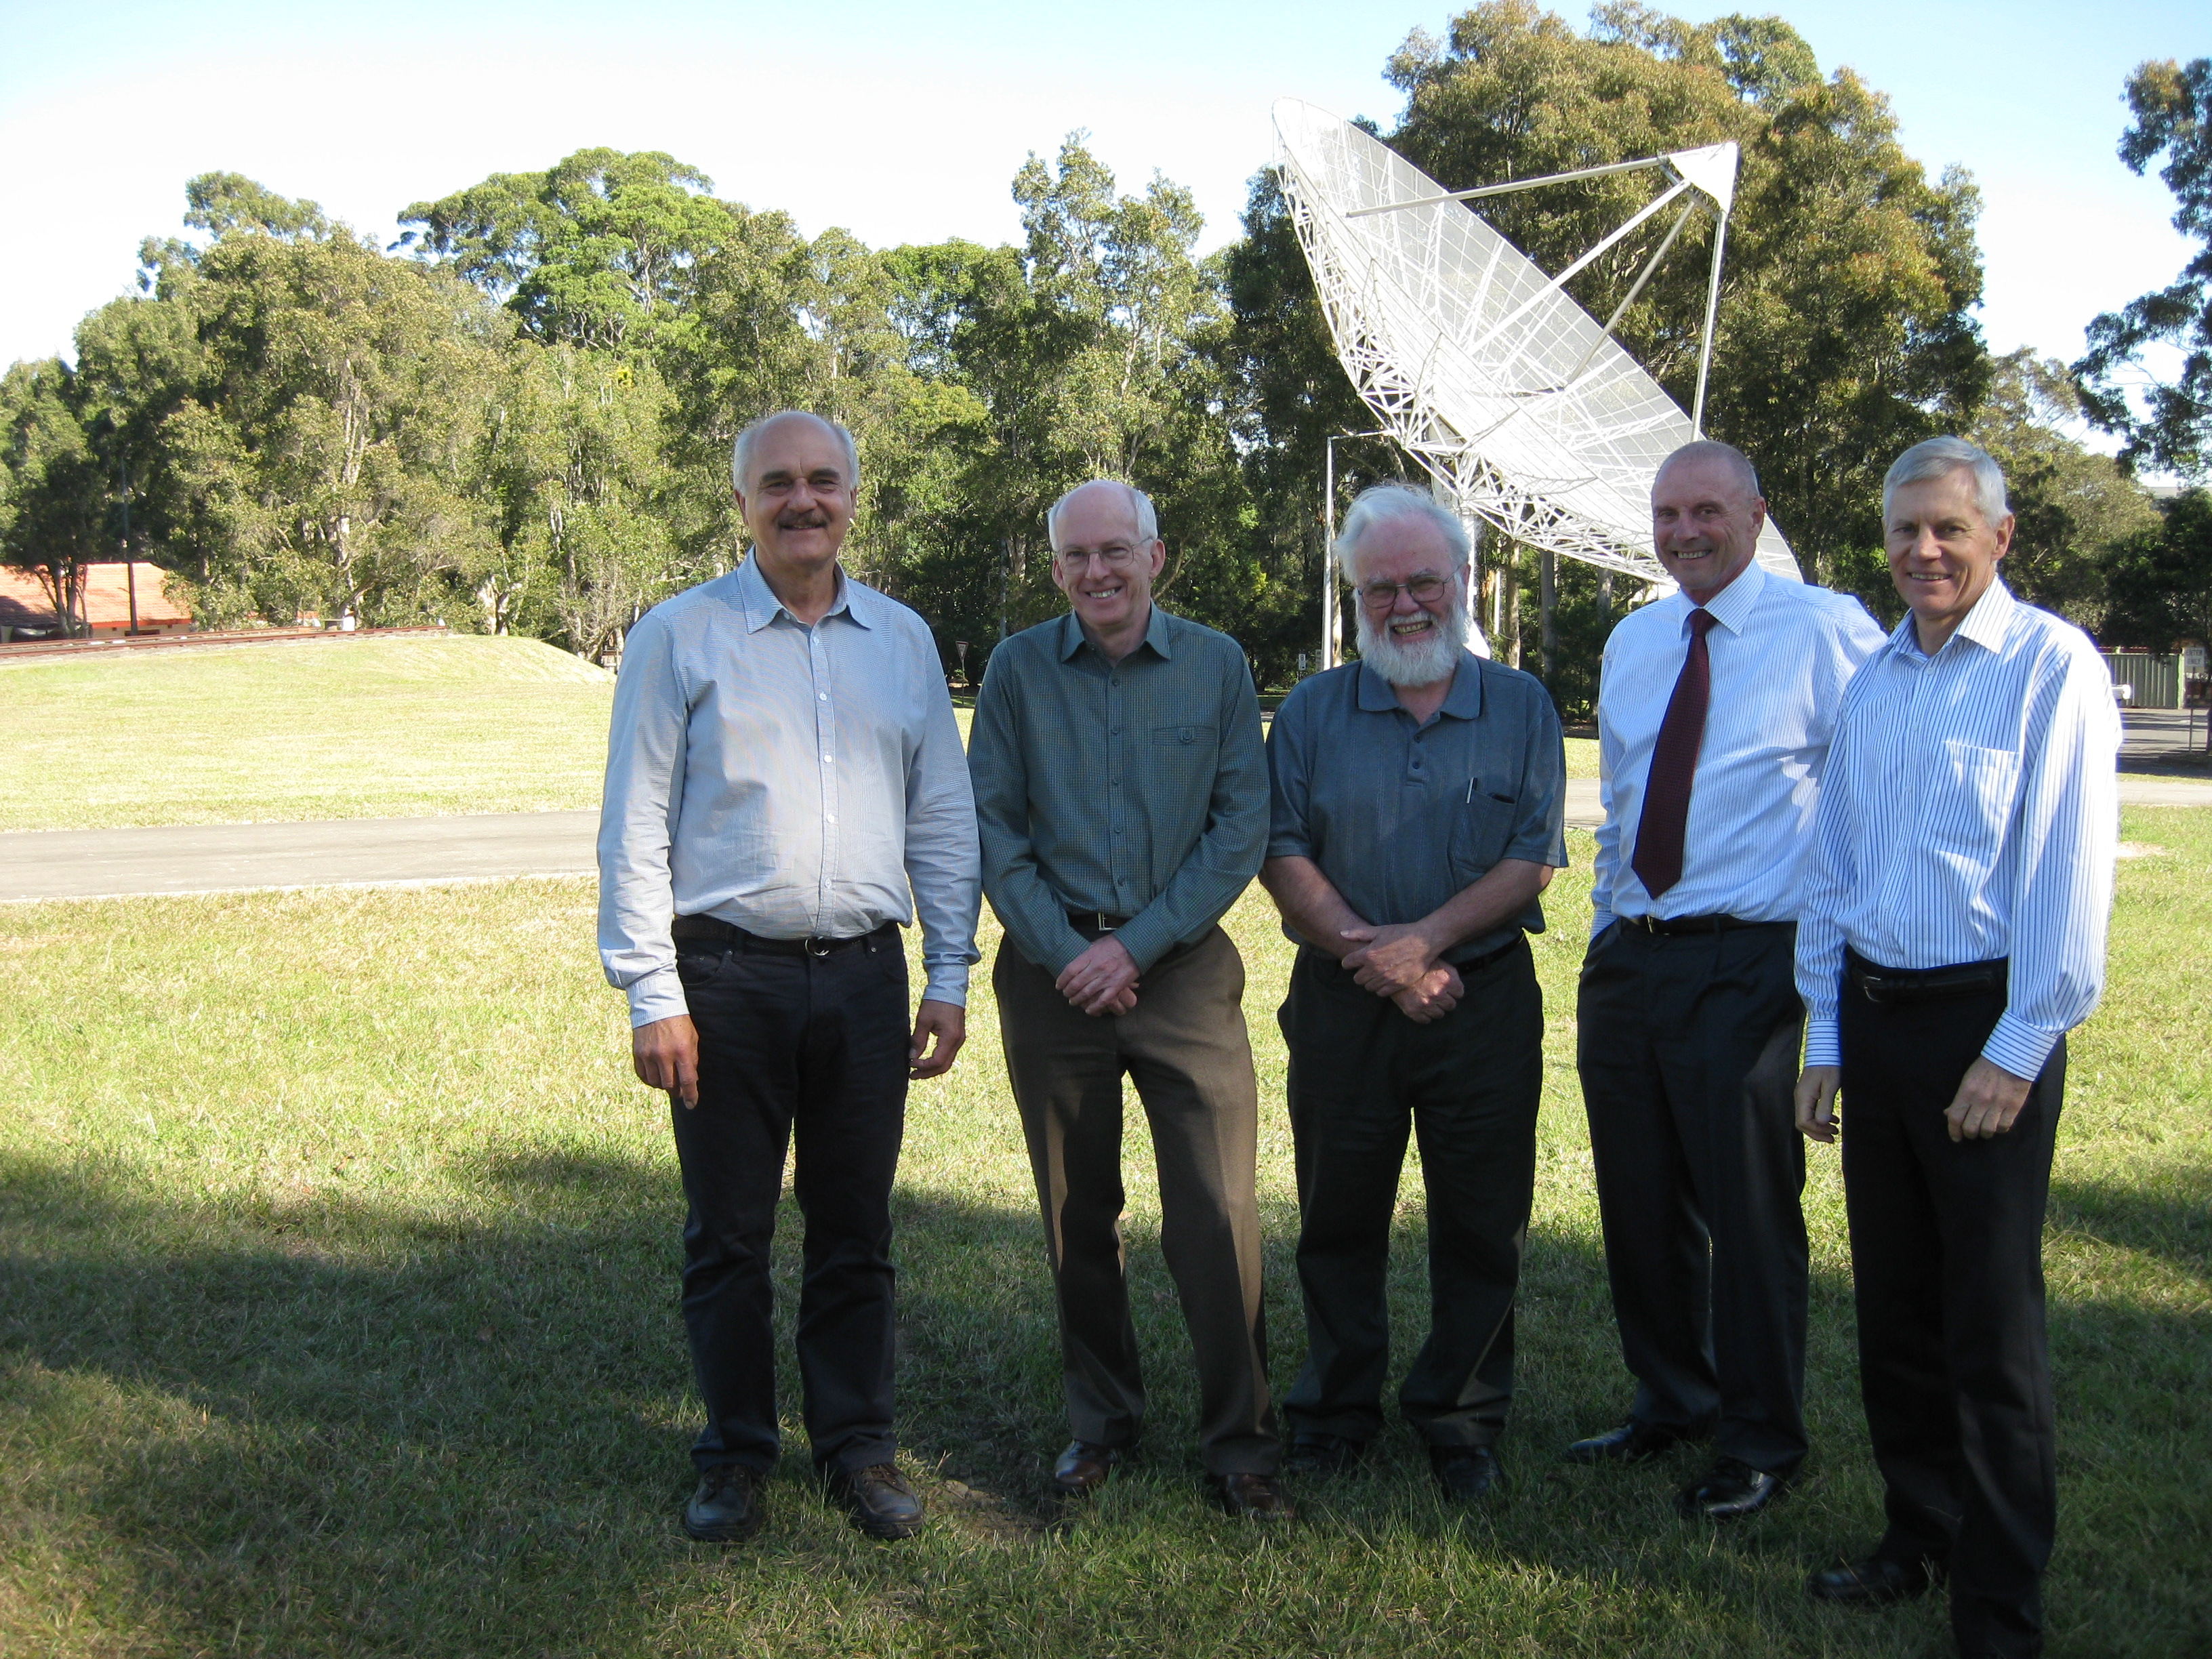 CSIRO's WLAN team standing on the lawn in front of small radio telescope.